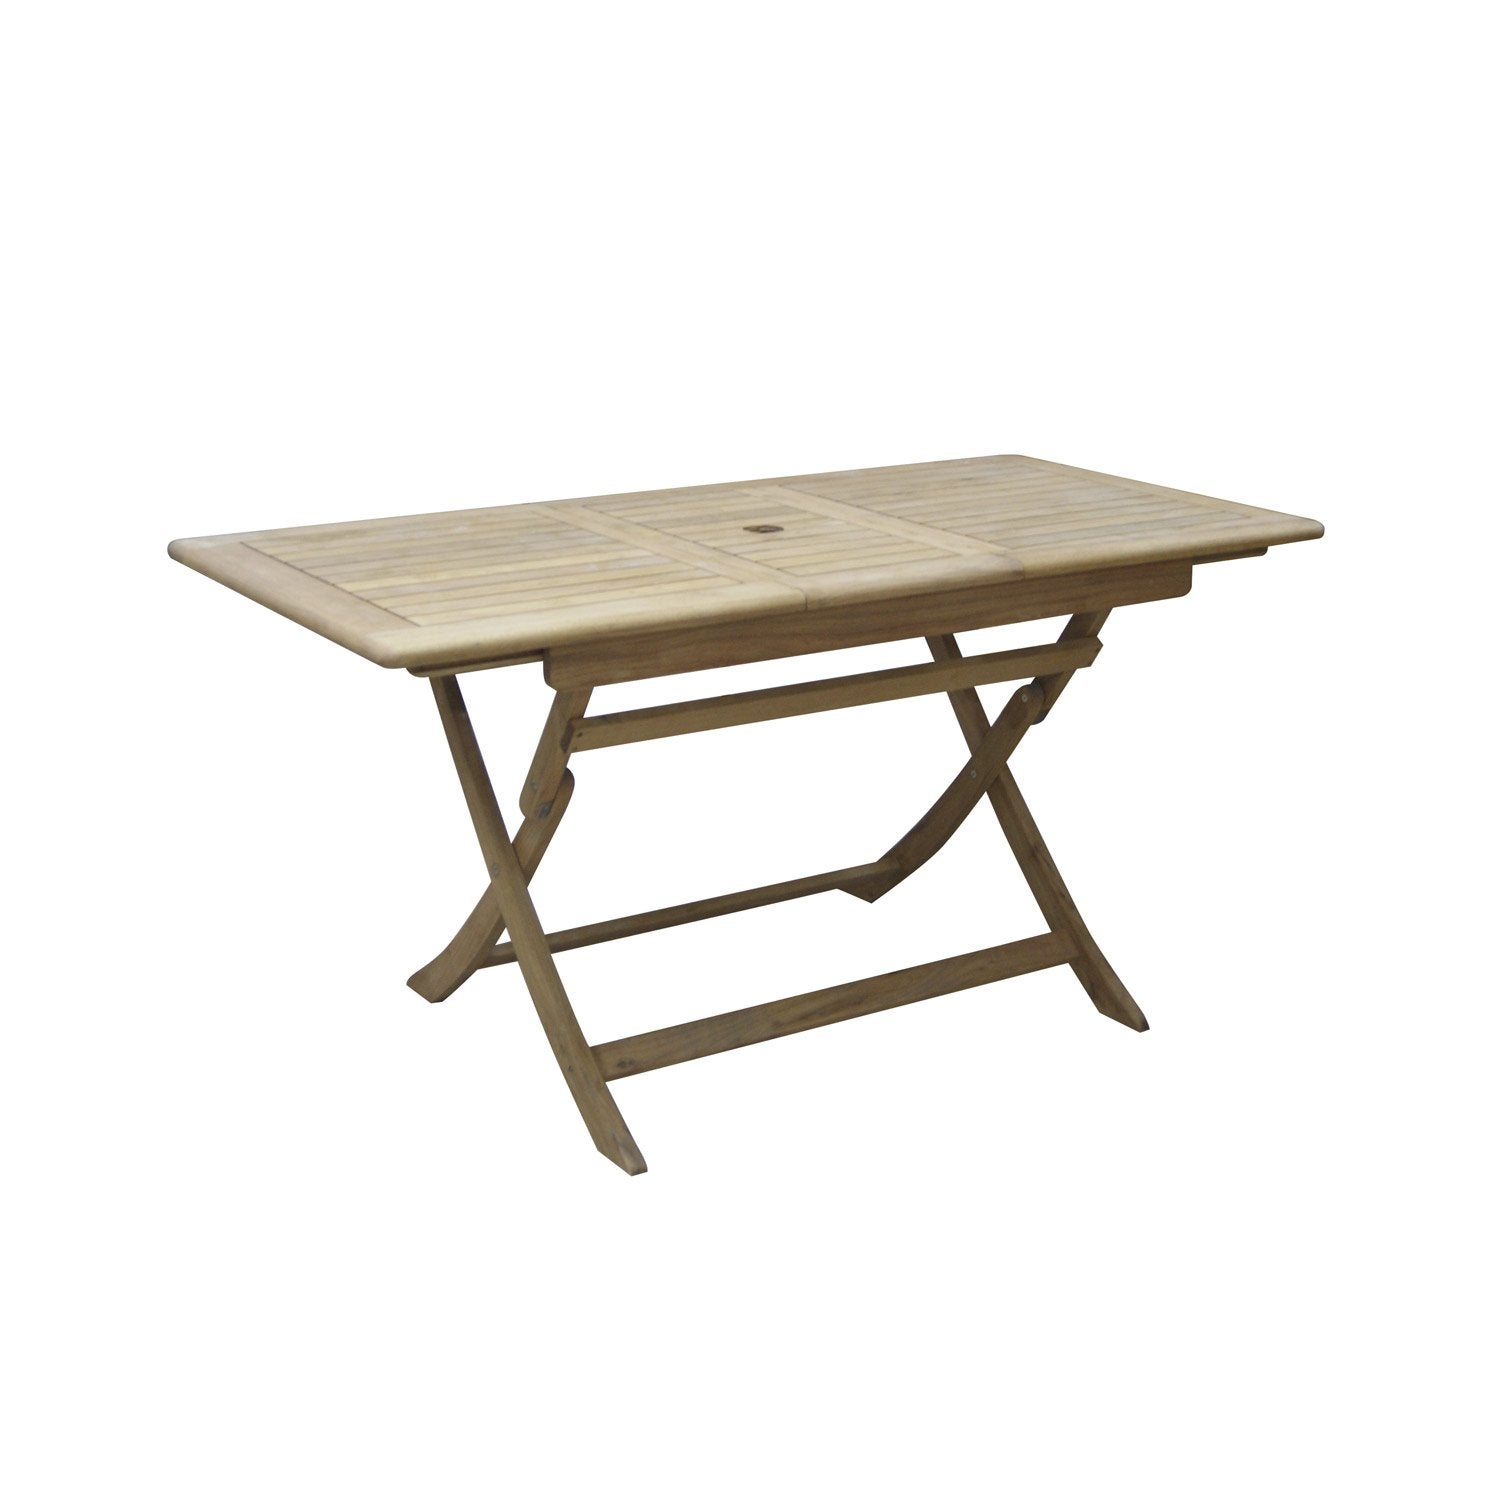 Salon de jardin bois table pliante for Table jardin pliante